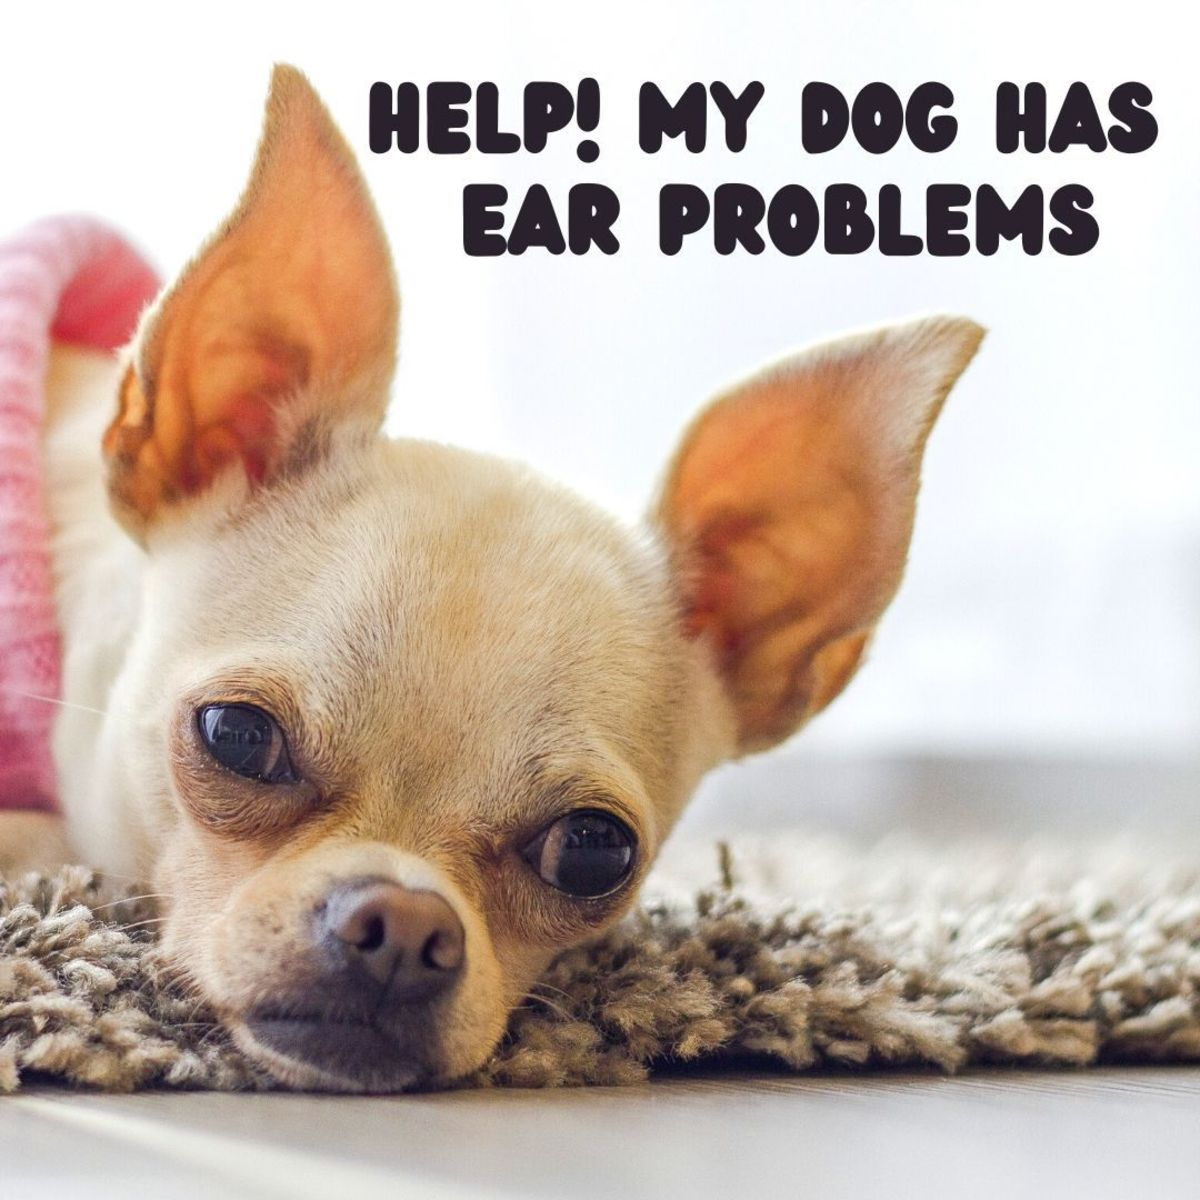 Why Does My Dog Have Ear Scabs and What Can I Do?